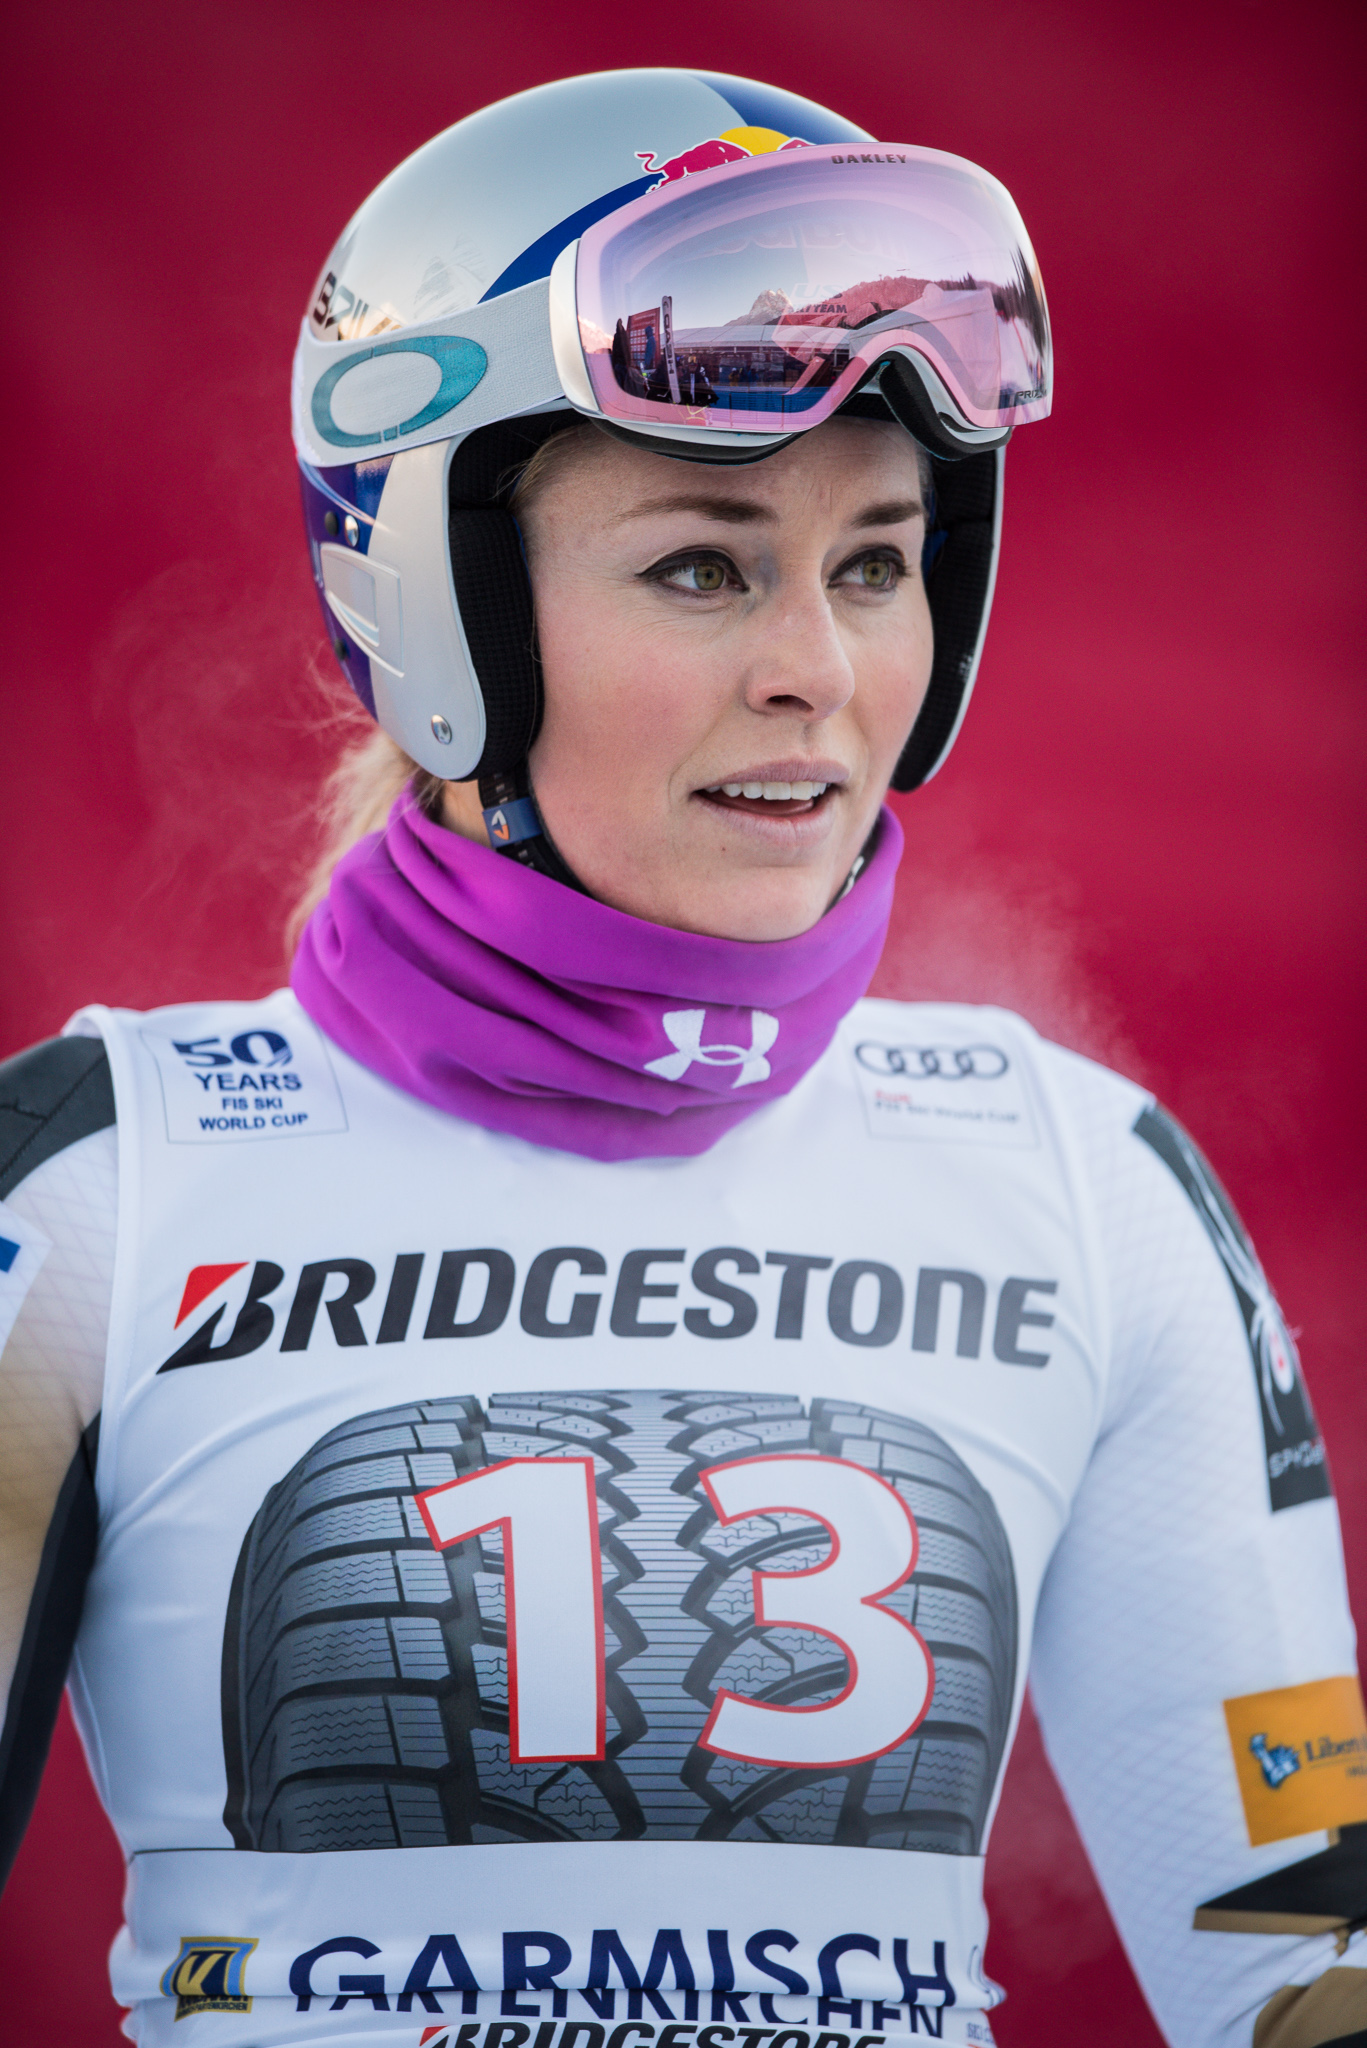 THE LAST FEMALE ALPINE CHAMPION